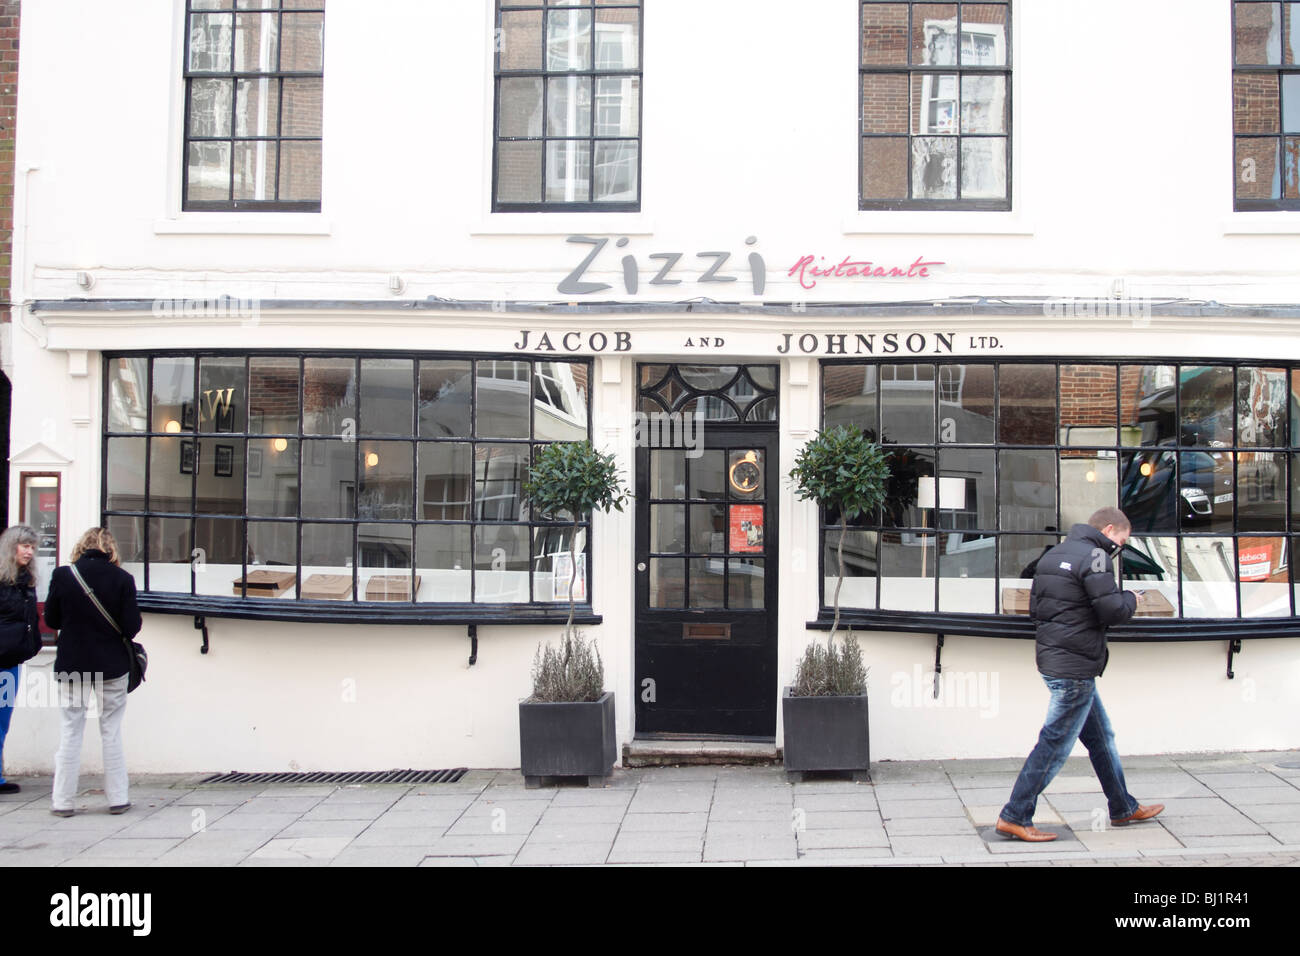 Prepossessing Zizzi Stock Photos  Zizzi Stock Images  Alamy With Heavenly Zizzi Restaurant In Winchester High Street In The Old Jacob And Johnson  Ltd Building Which With Enchanting Gardening Services Manchester Also Cheap Outdoor Garden Furniture In Addition Stk Covent Garden Menu And Redfields Garden Centre Church Crookham As Well As Covent Garden Odeon Additionally Garden Trimmer From Alamycom With   Heavenly Zizzi Stock Photos  Zizzi Stock Images  Alamy With Enchanting Zizzi Restaurant In Winchester High Street In The Old Jacob And Johnson  Ltd Building Which And Prepossessing Gardening Services Manchester Also Cheap Outdoor Garden Furniture In Addition Stk Covent Garden Menu From Alamycom